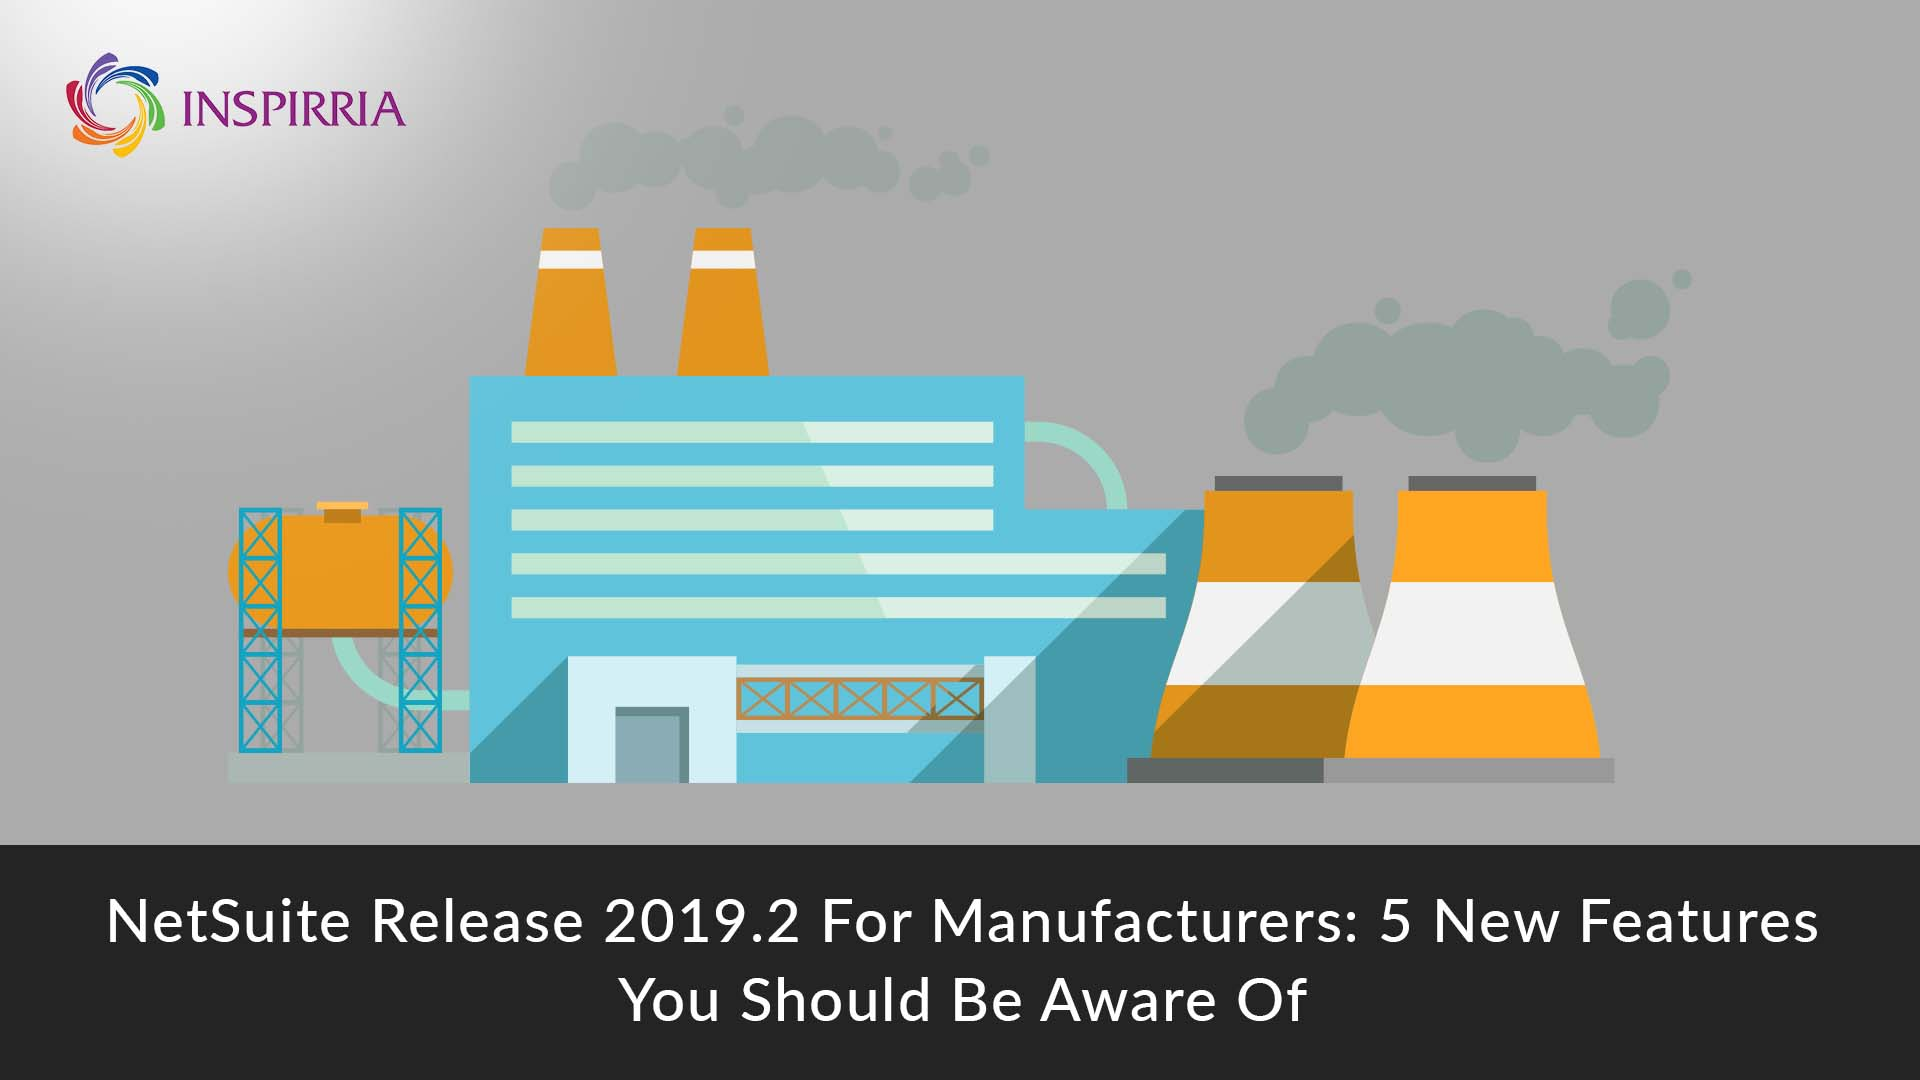 NetSuite updates 2019.2 for manufacturers